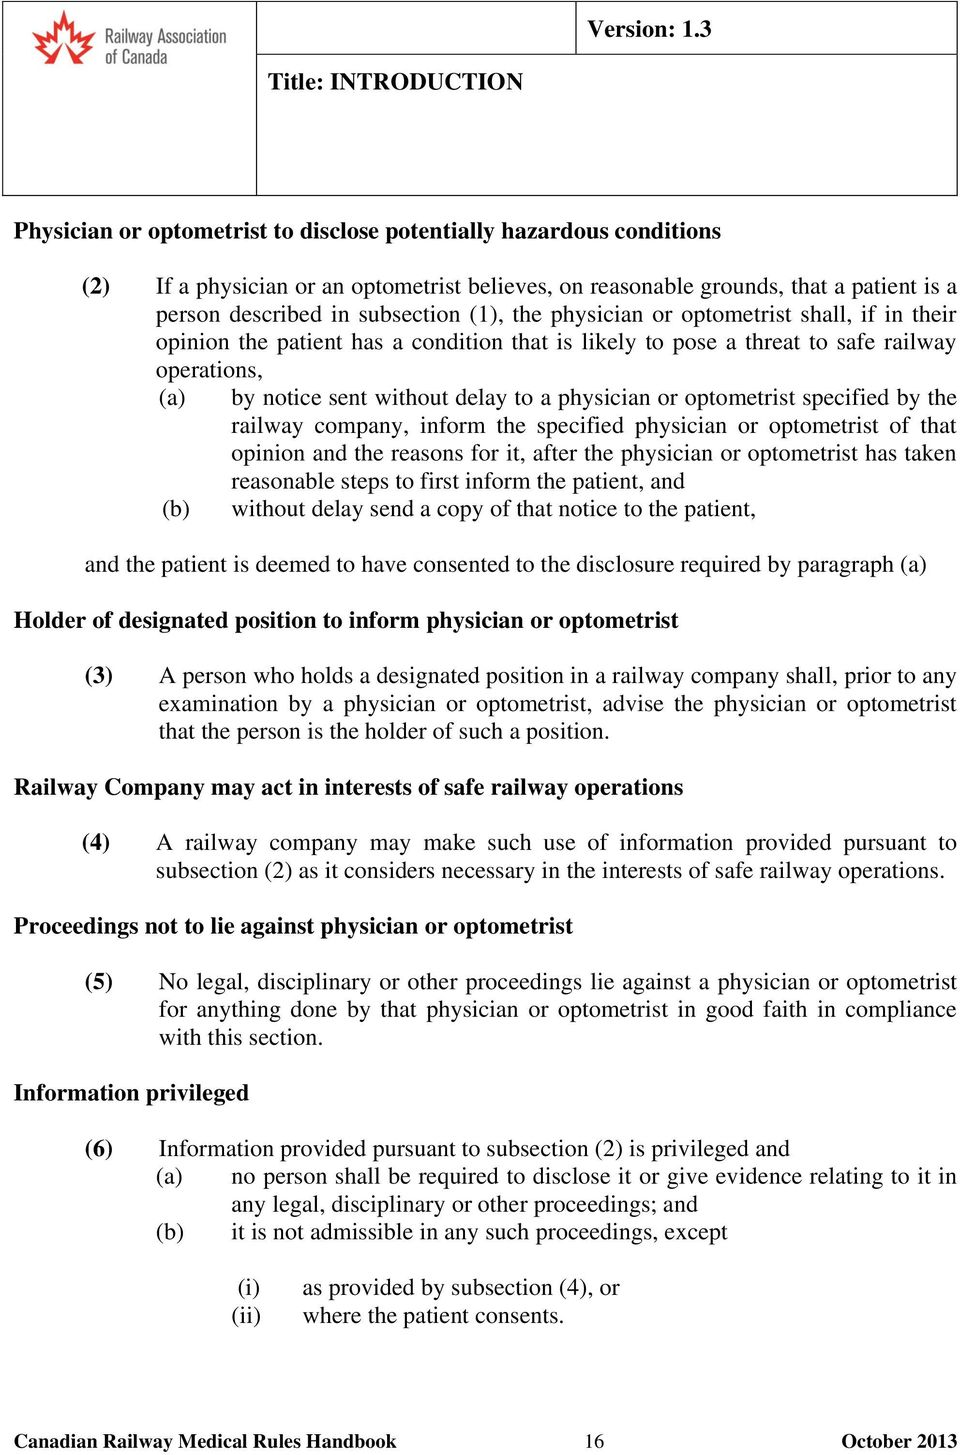 in subsection (1), the physician or optometrist shall, if in their opinion the patient has a condition that is likely to pose a threat to safe railway operations, (a) by notice sent without delay to